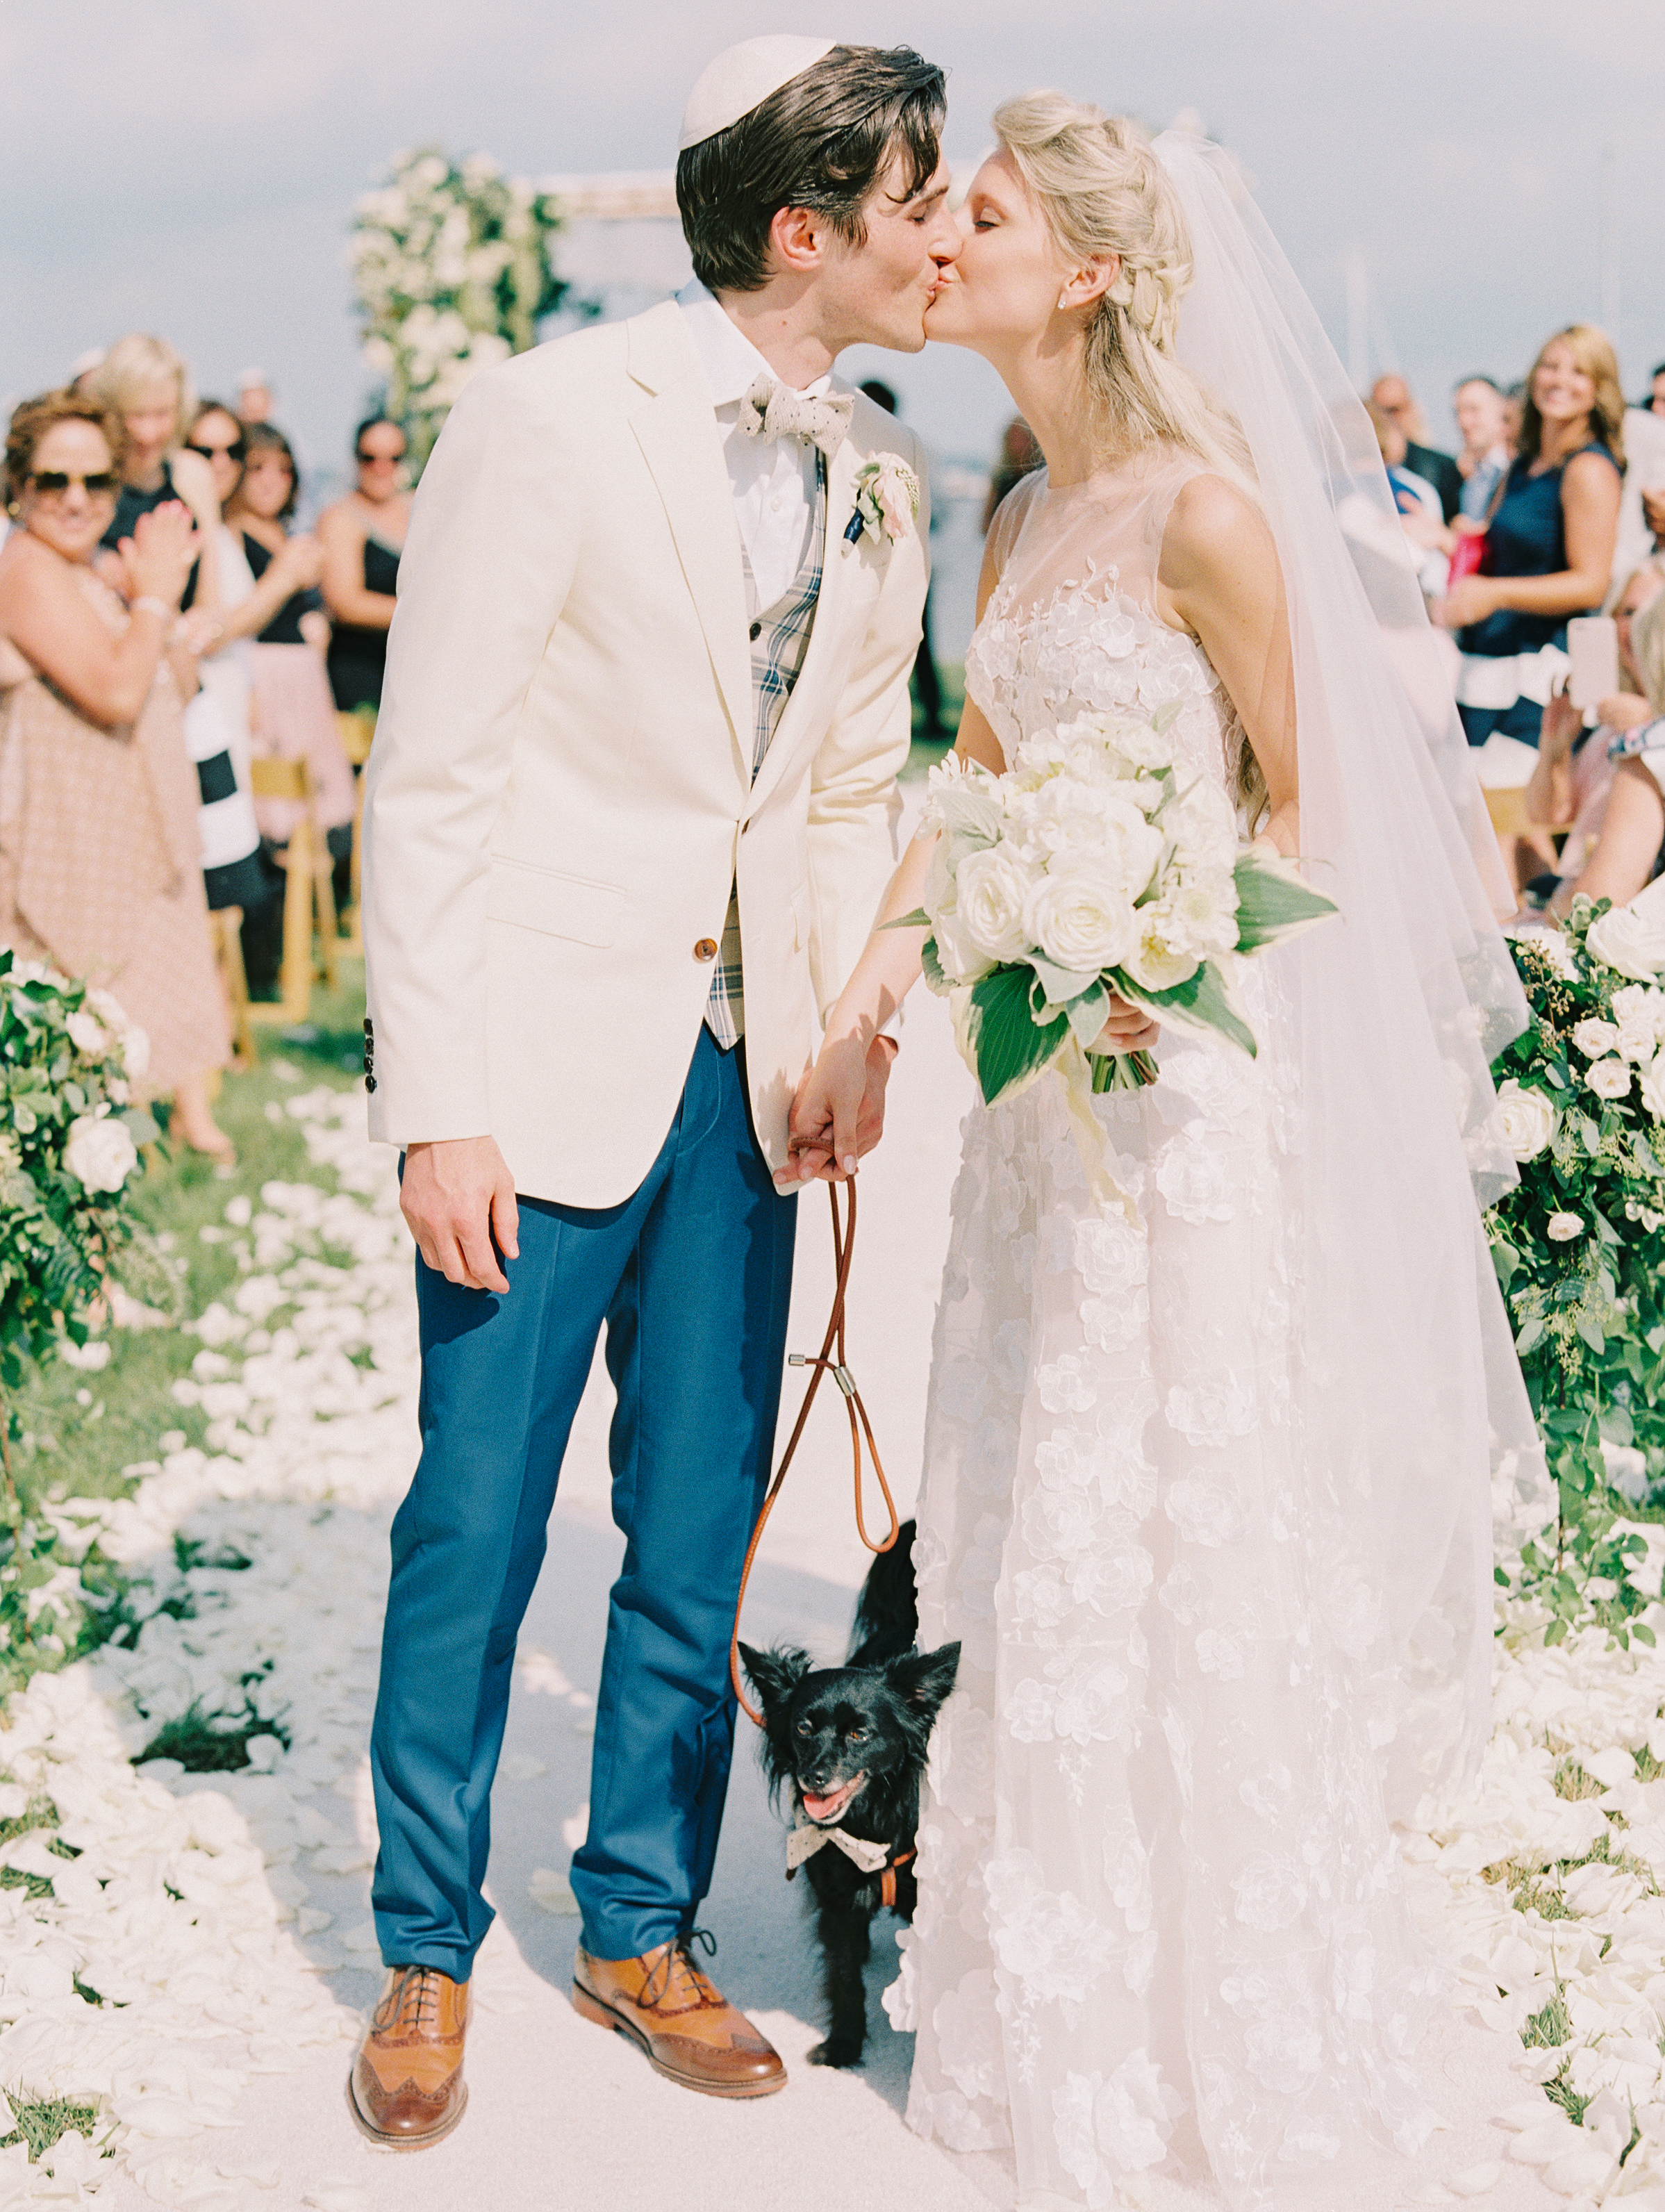 katie stoops photography-inn at perry cabin wedding26.jpg